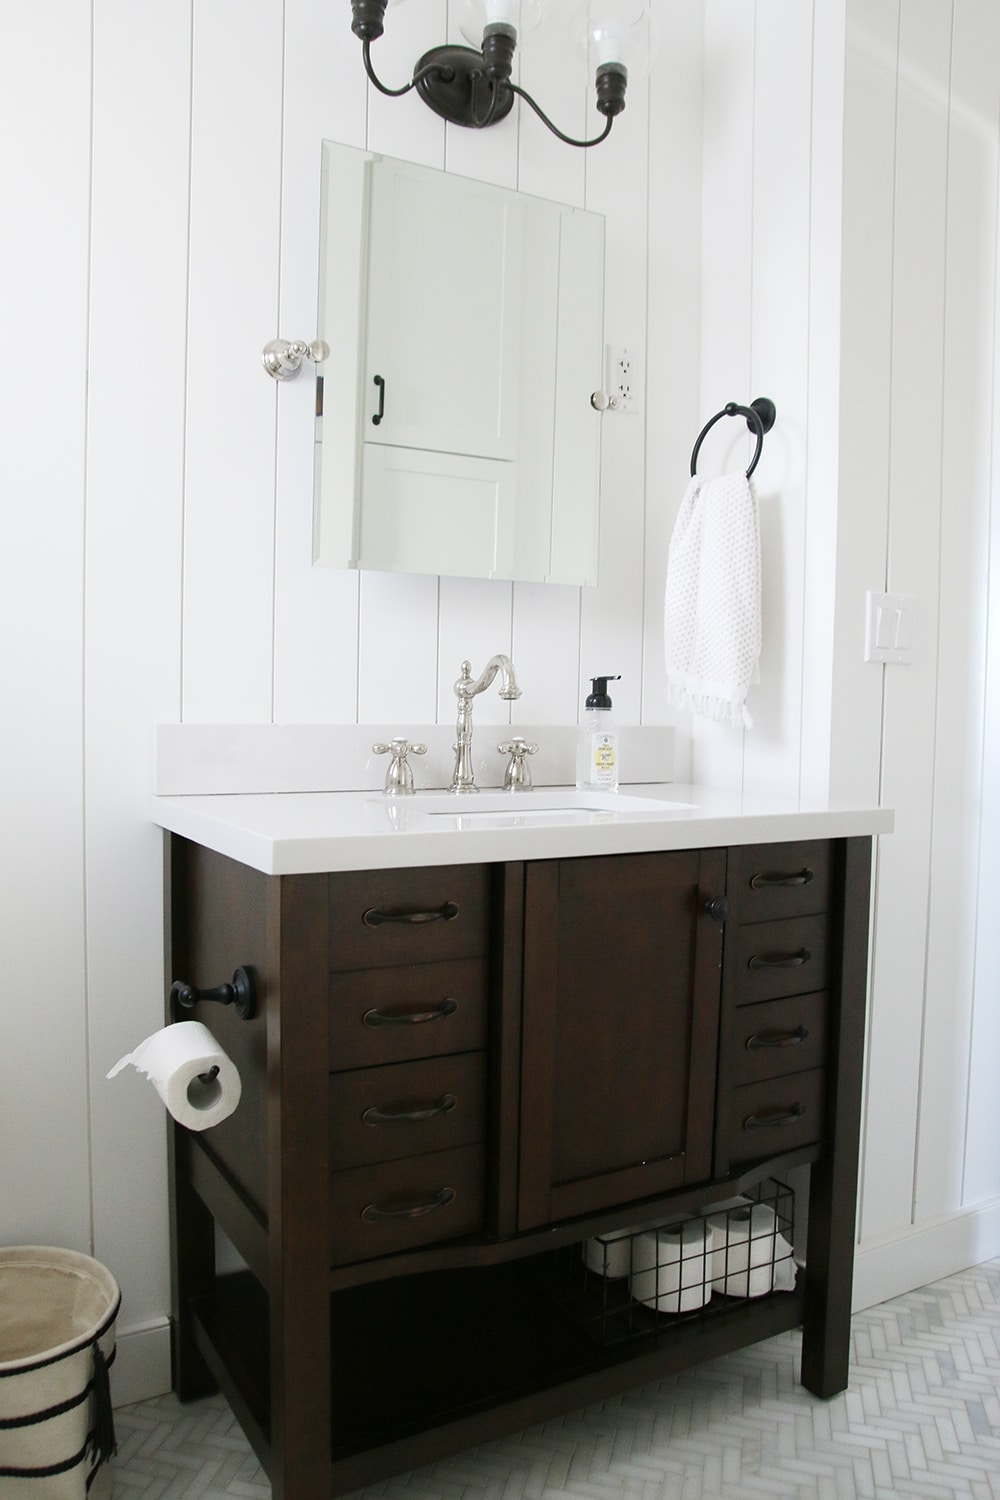 The Most Diy Friendly Bathroom Renovation We Ve Ever Done Chris Loves Julia